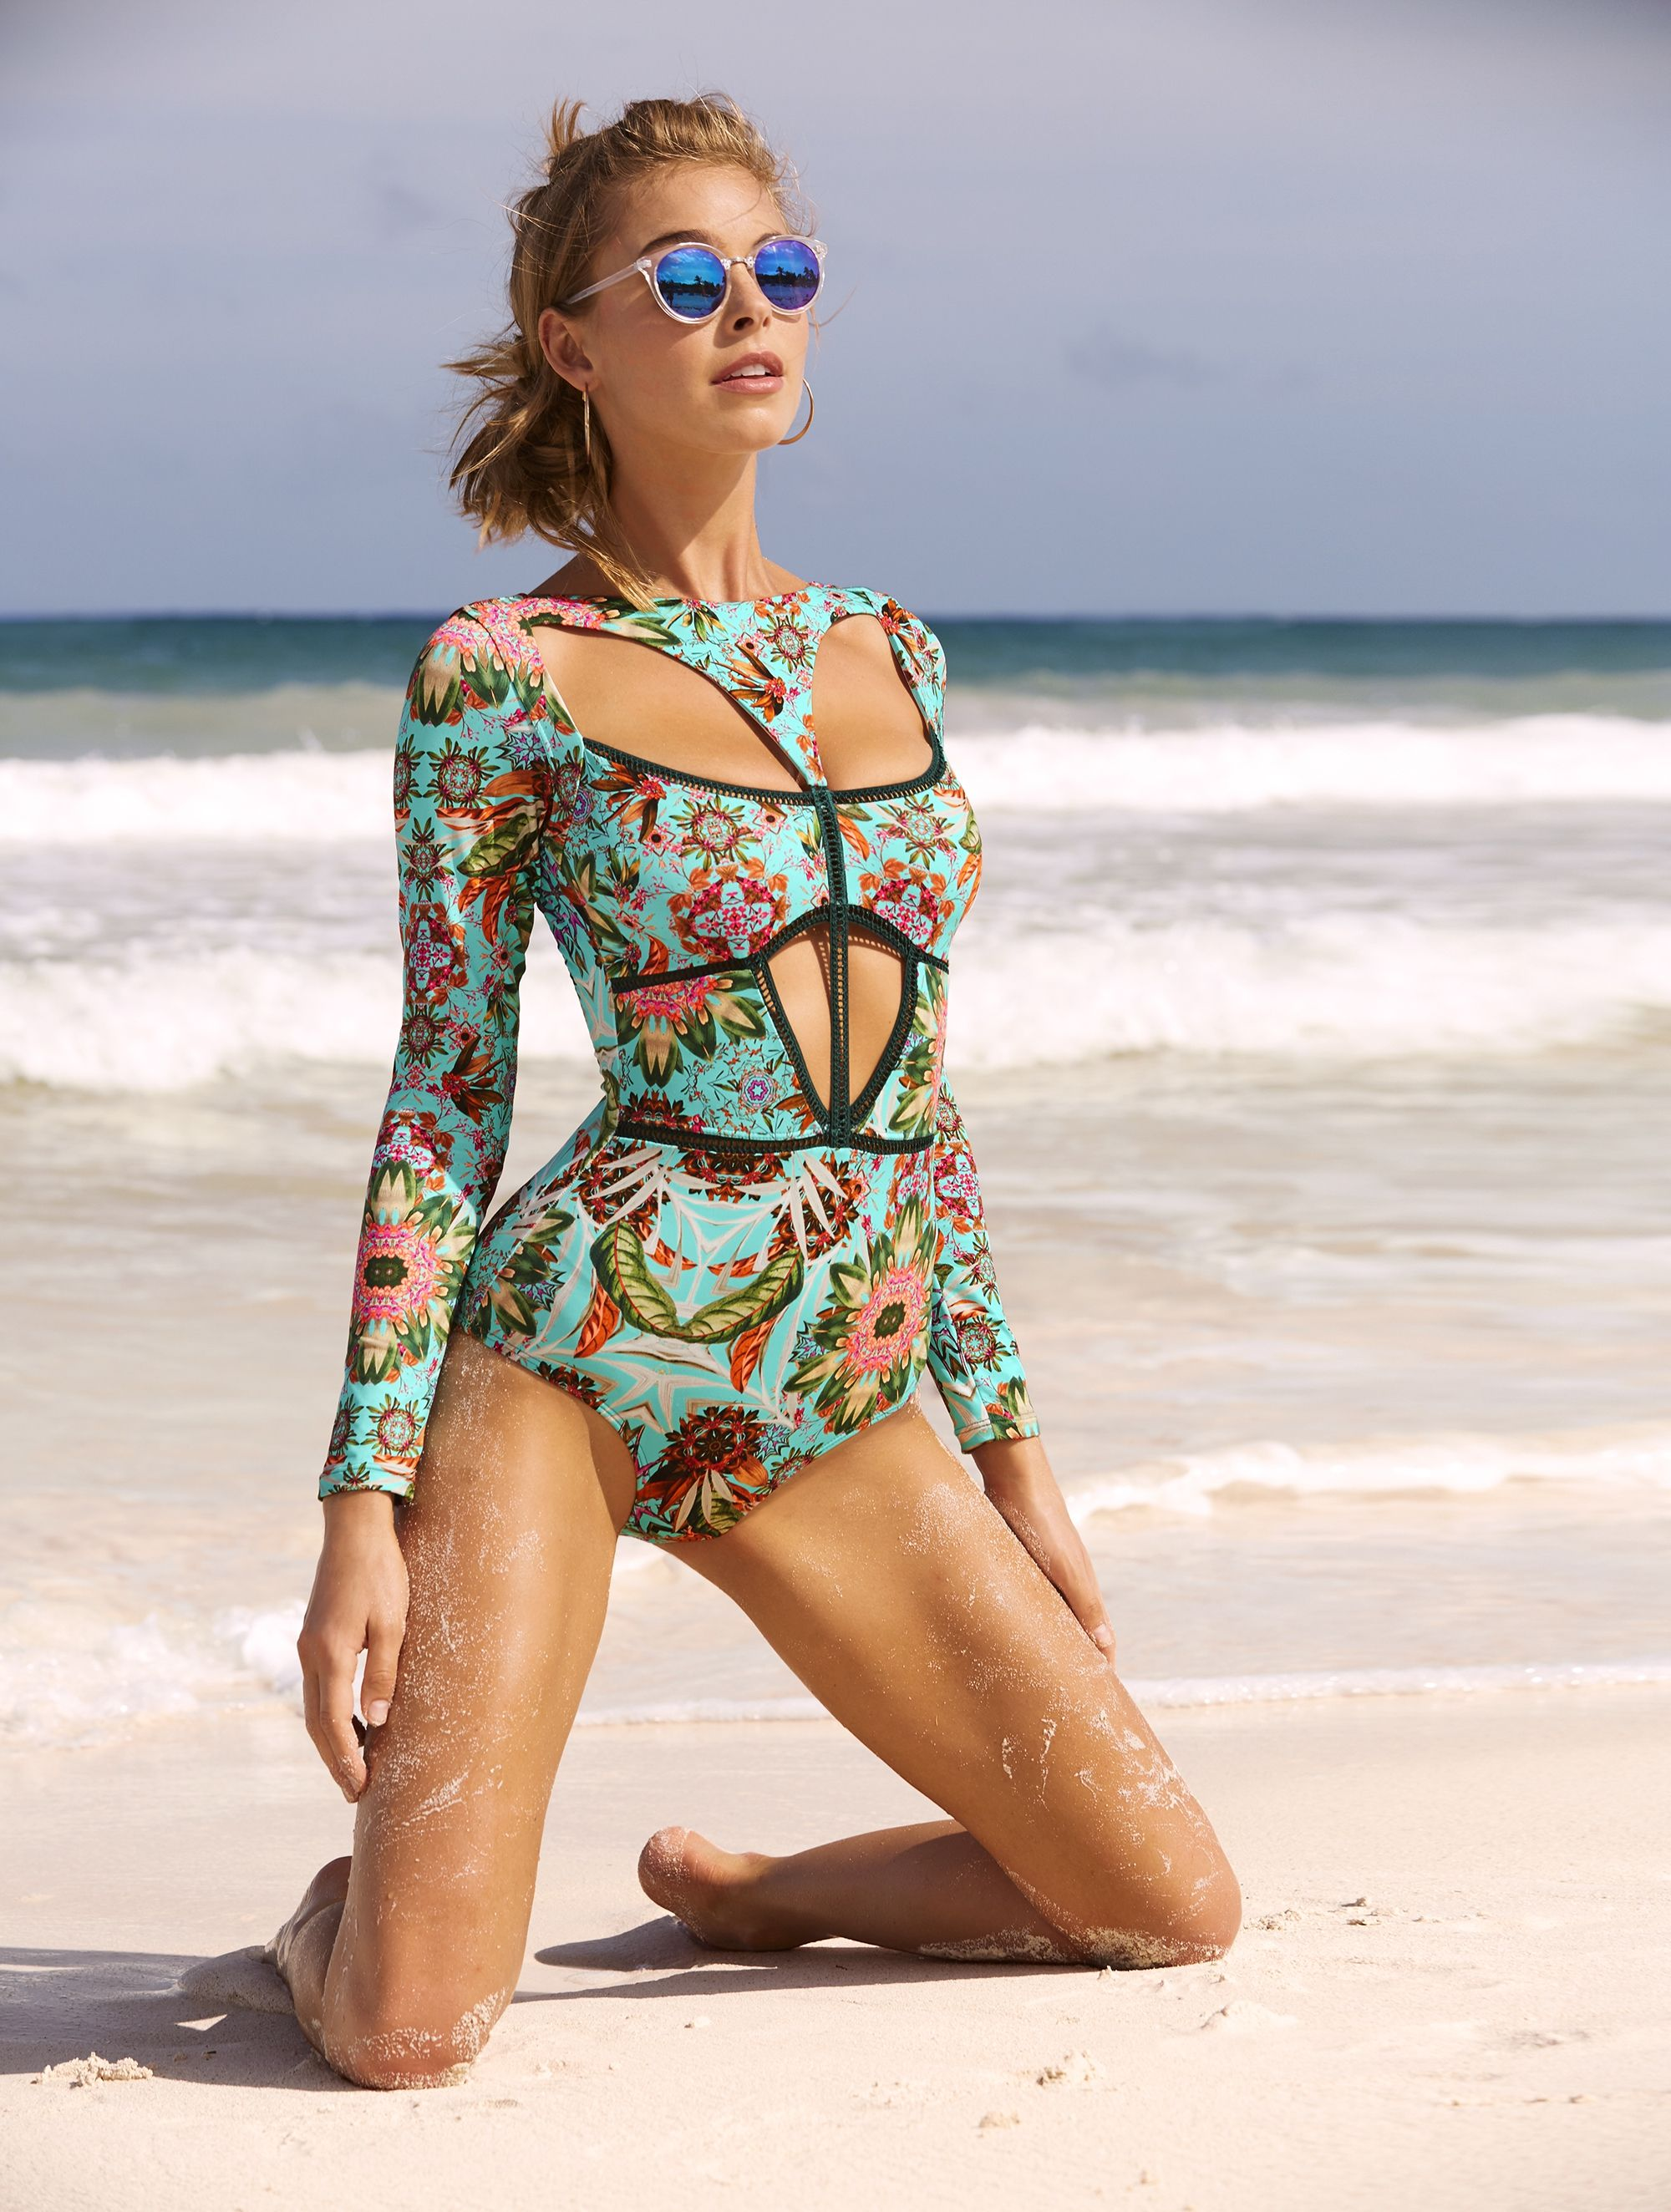 Cheap Sale Bikini Zipper Fashion Ethnic Style Beach One Piece Diving Holiday Padded Swimming Women Swimwear Summer Long Sleeve Surfing Attractive Designs; Bikinis Set